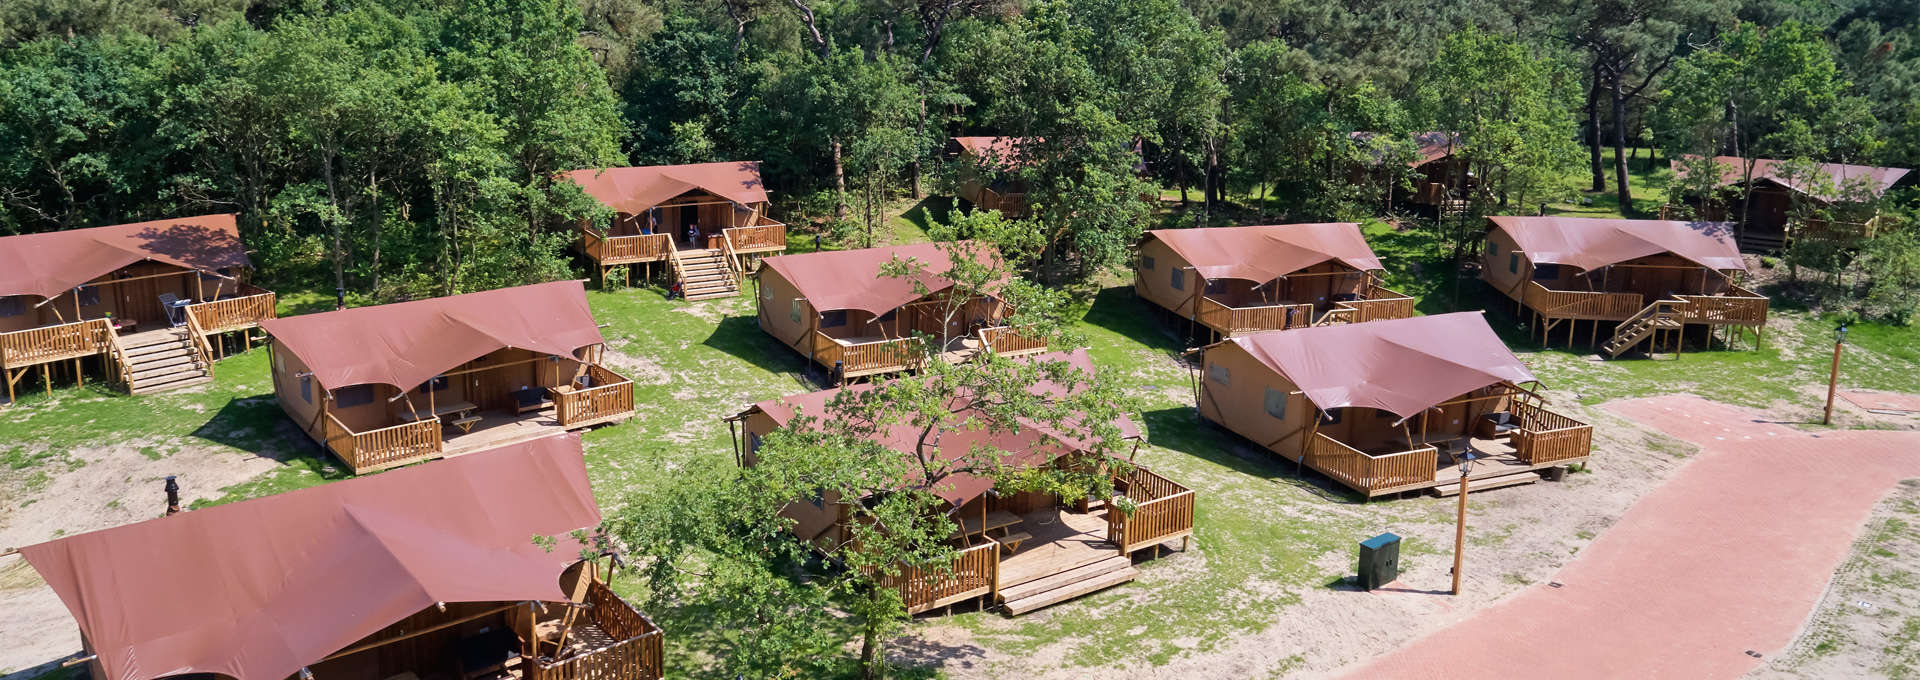 Lodge tents & Lodge tents - Luxury camping at Holiday Park Duinrell